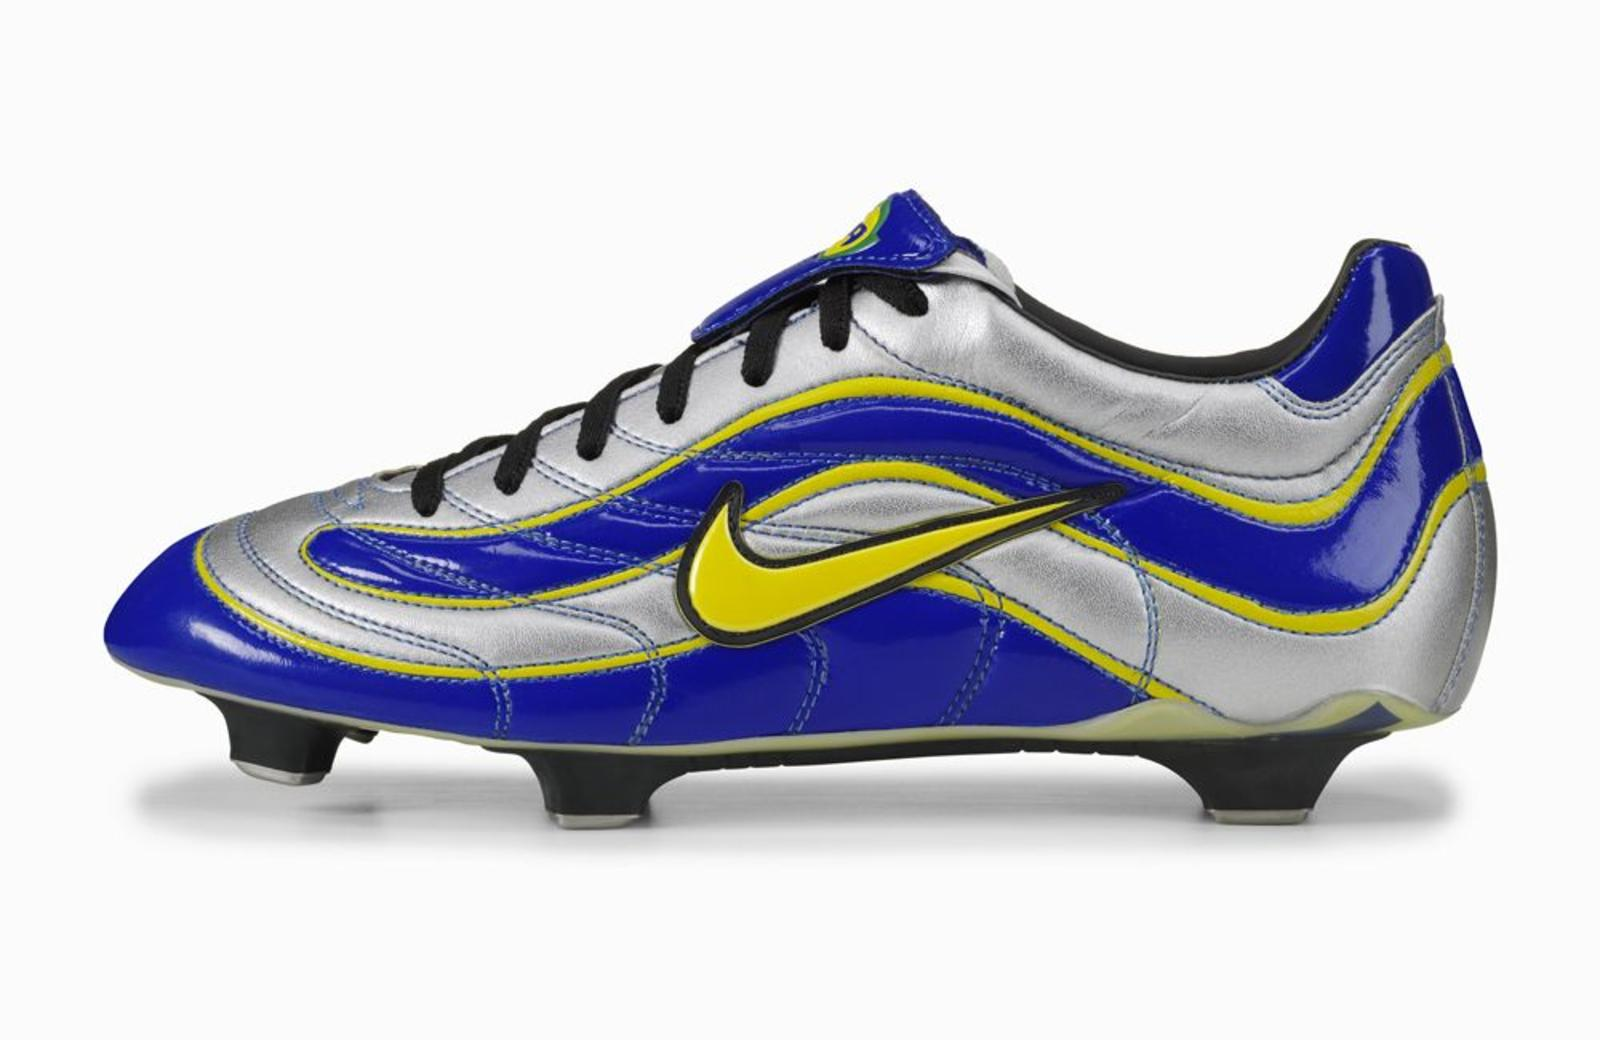 hot sale online 1f5a7 fb530 1997-nike-football-history-mercurial